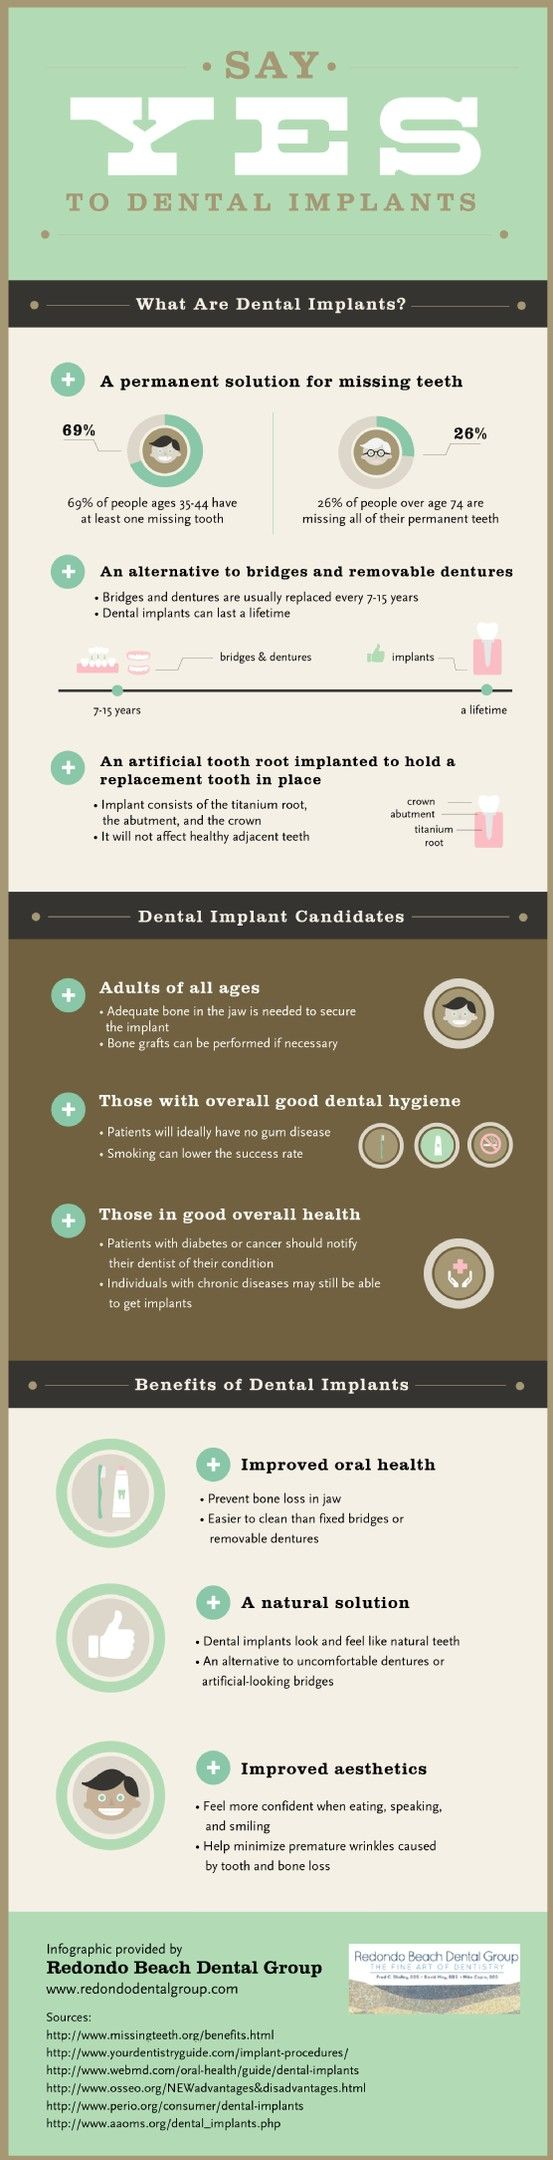 Bridges and dentures only offer short-term solutions for missing teeth and need to be replaced every 7-15 years. Dental implants, though, last a lifetime and offer more natural results. Find out more in this infographic from Redondo Beach Dental Group.